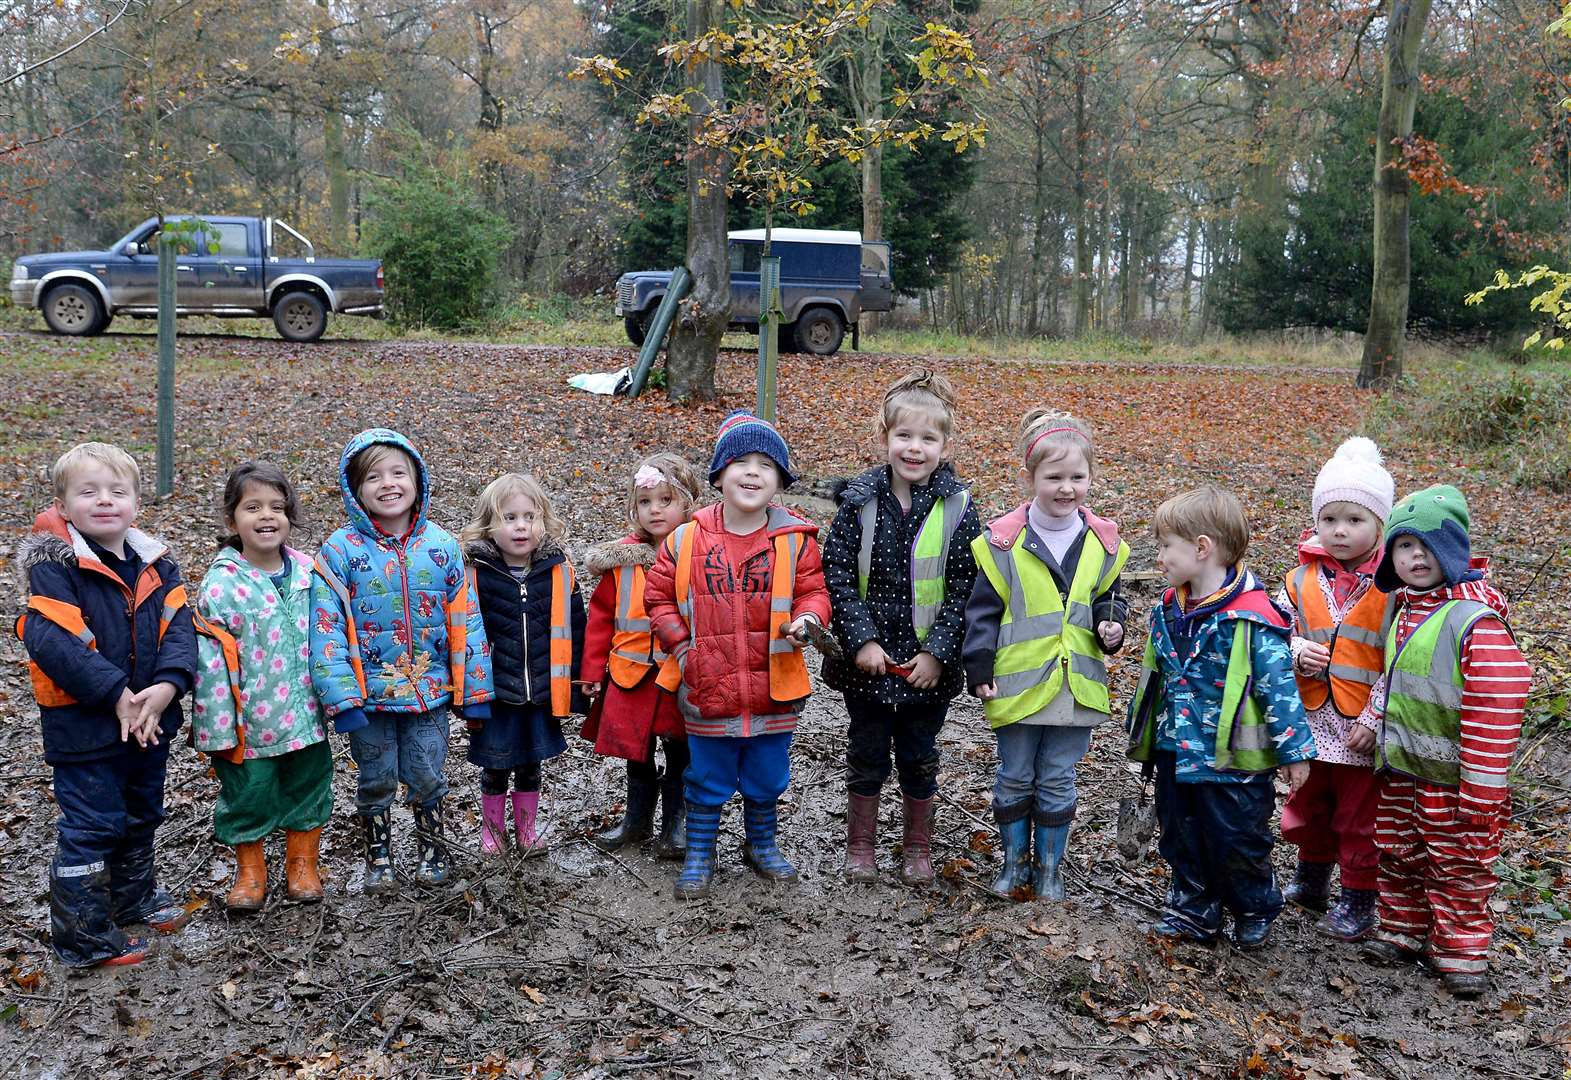 Children get involved in fight against climate change by planting trees